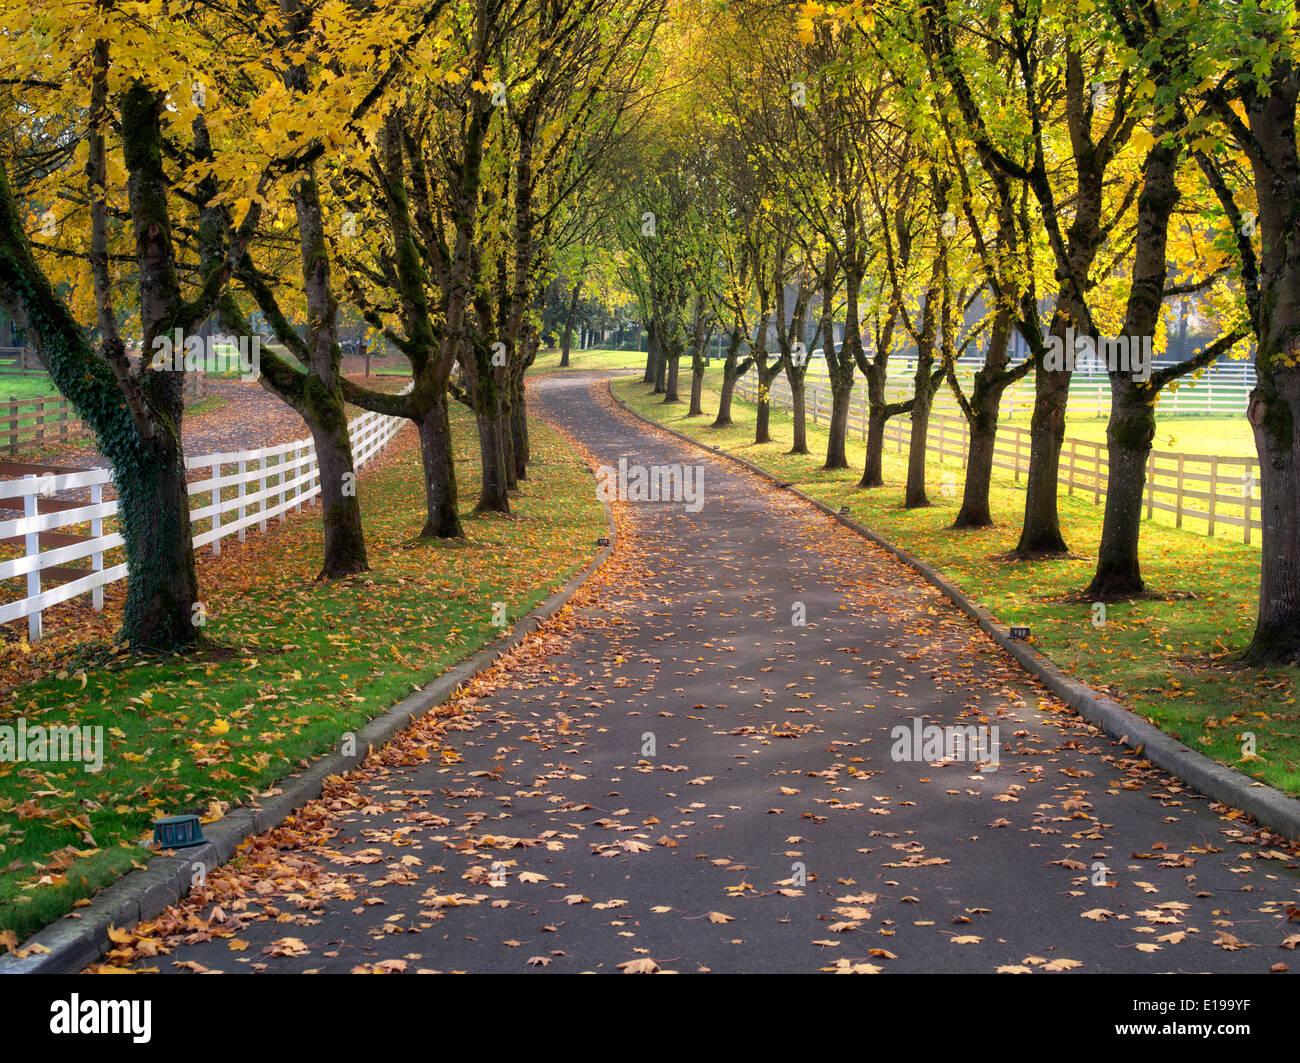 Tree lined road and fence with maple trees in fall color. Oregon - Stock Image